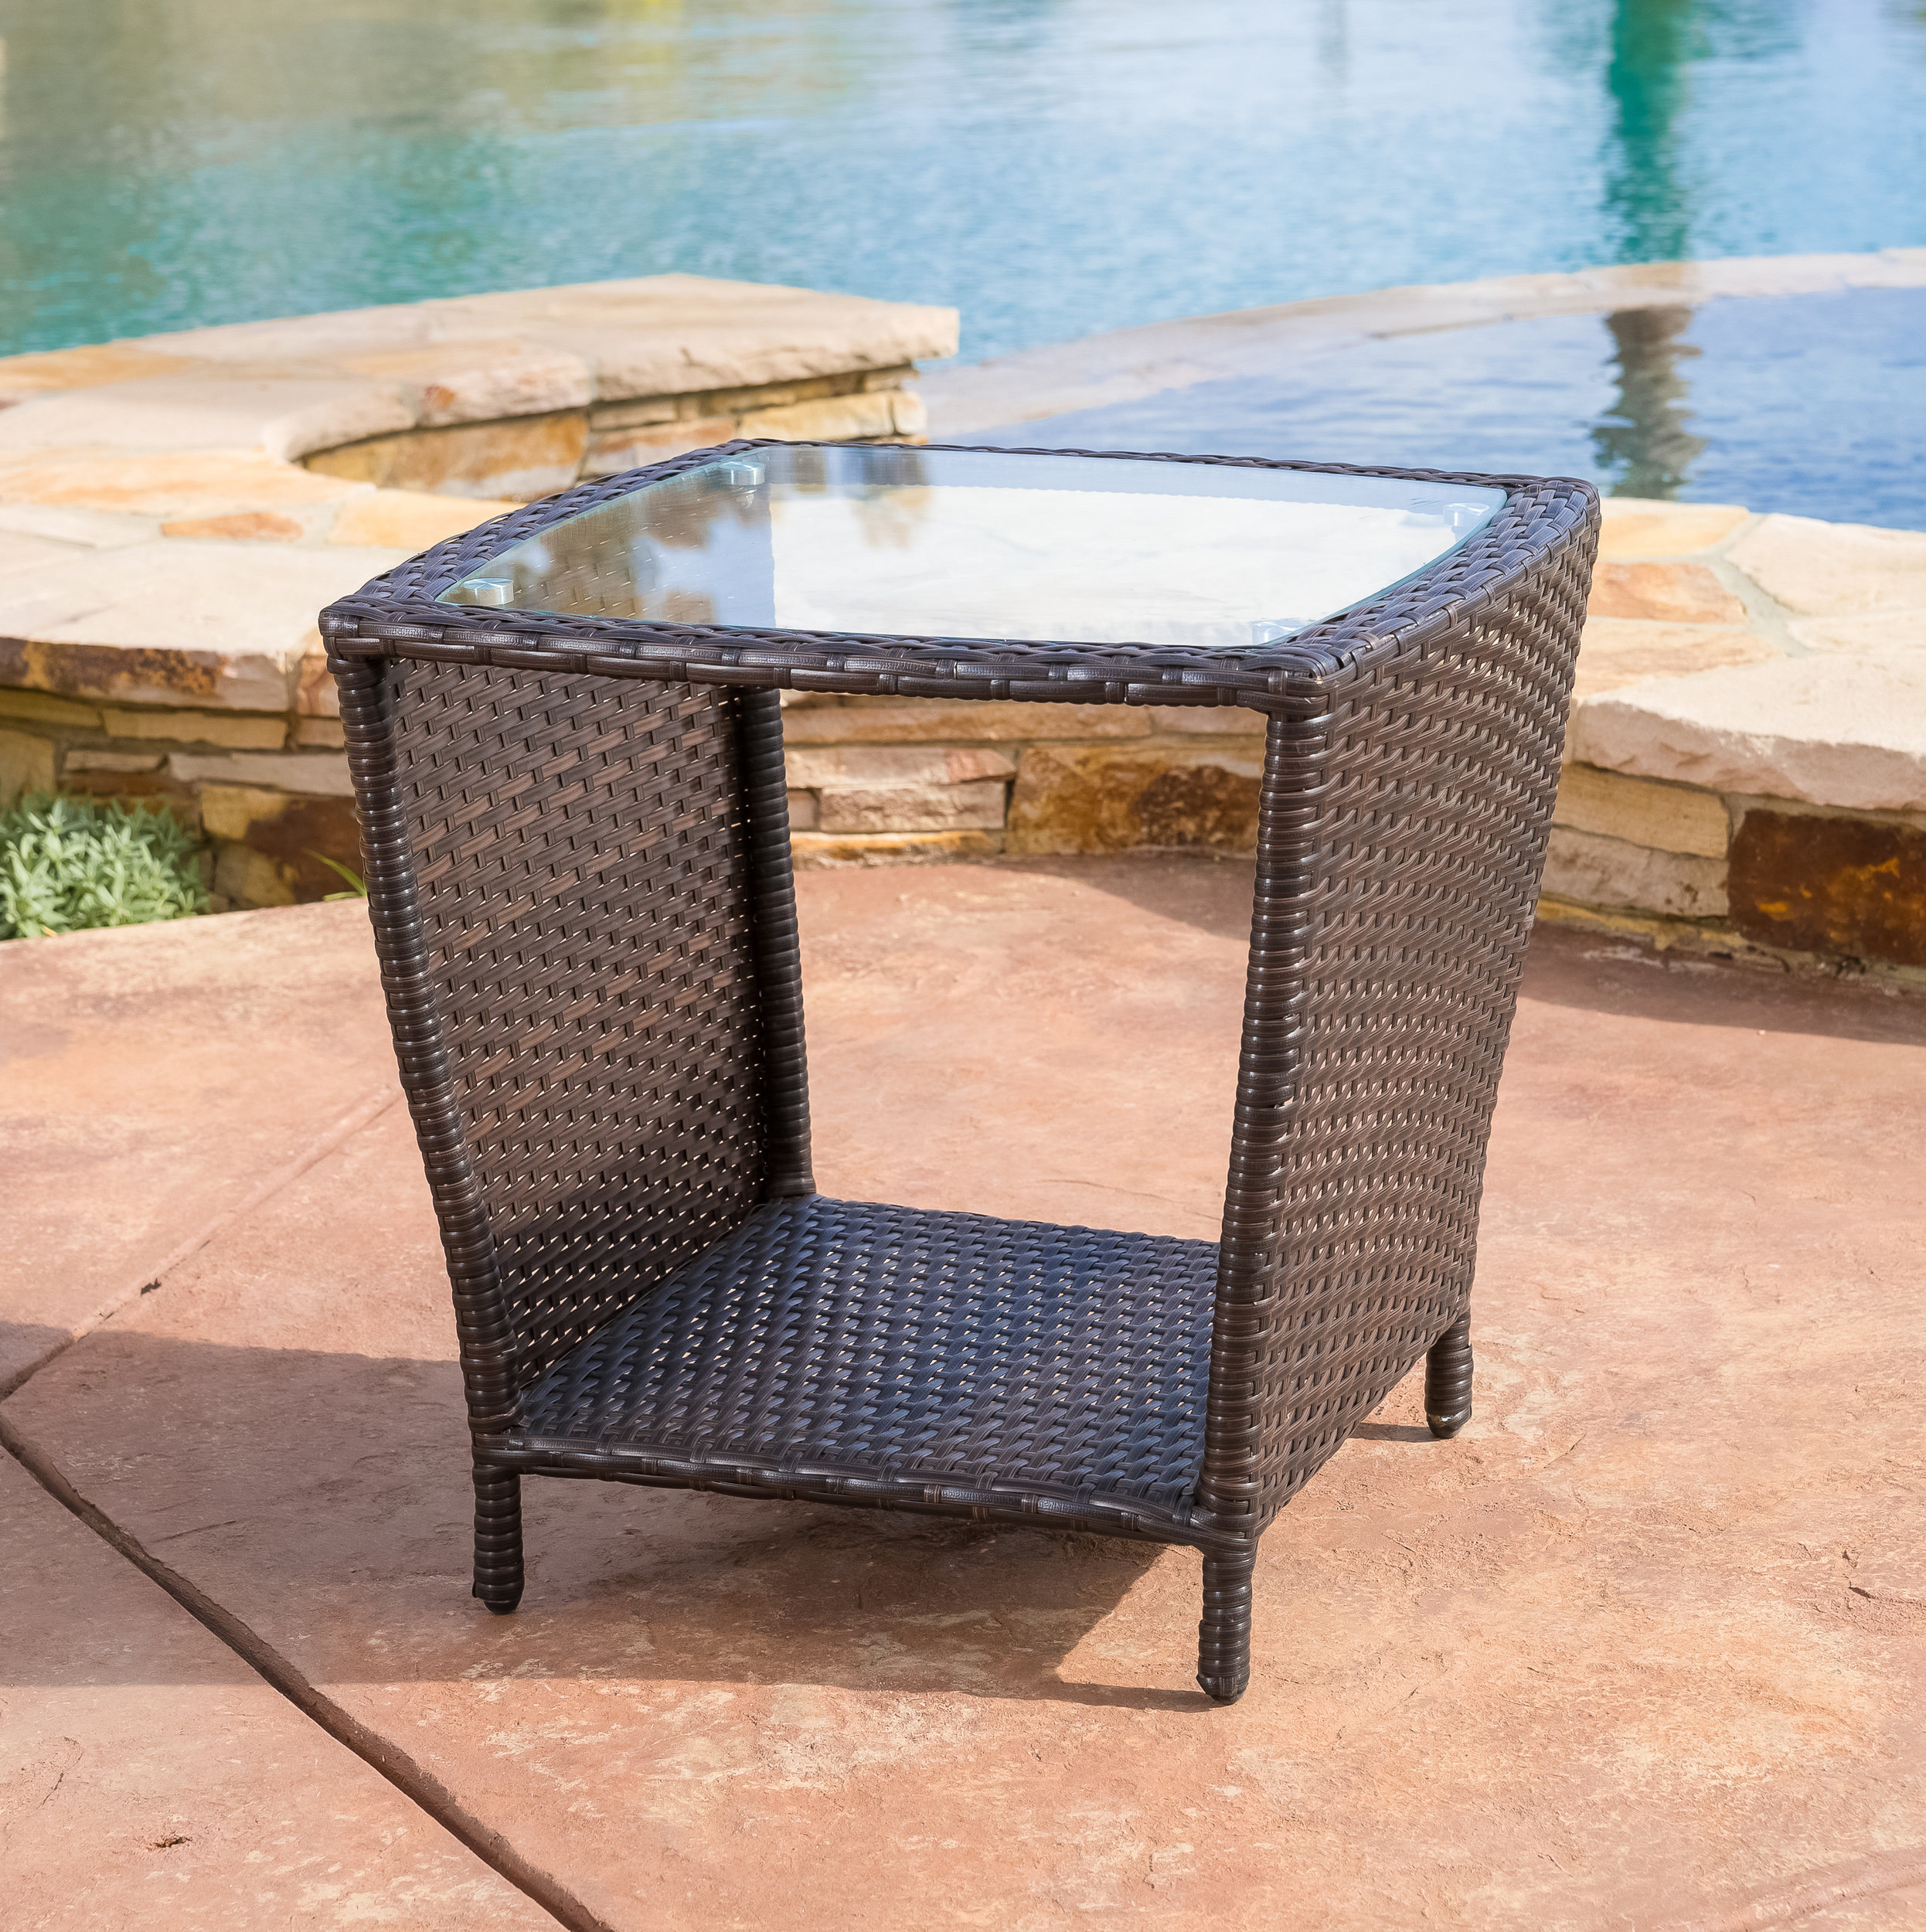 mercury row caro outdoor wicker side table with glass top reviews patio set flip kohls dishes sofa colorful coffee tables small wood nightstand grey console rustic sliding door